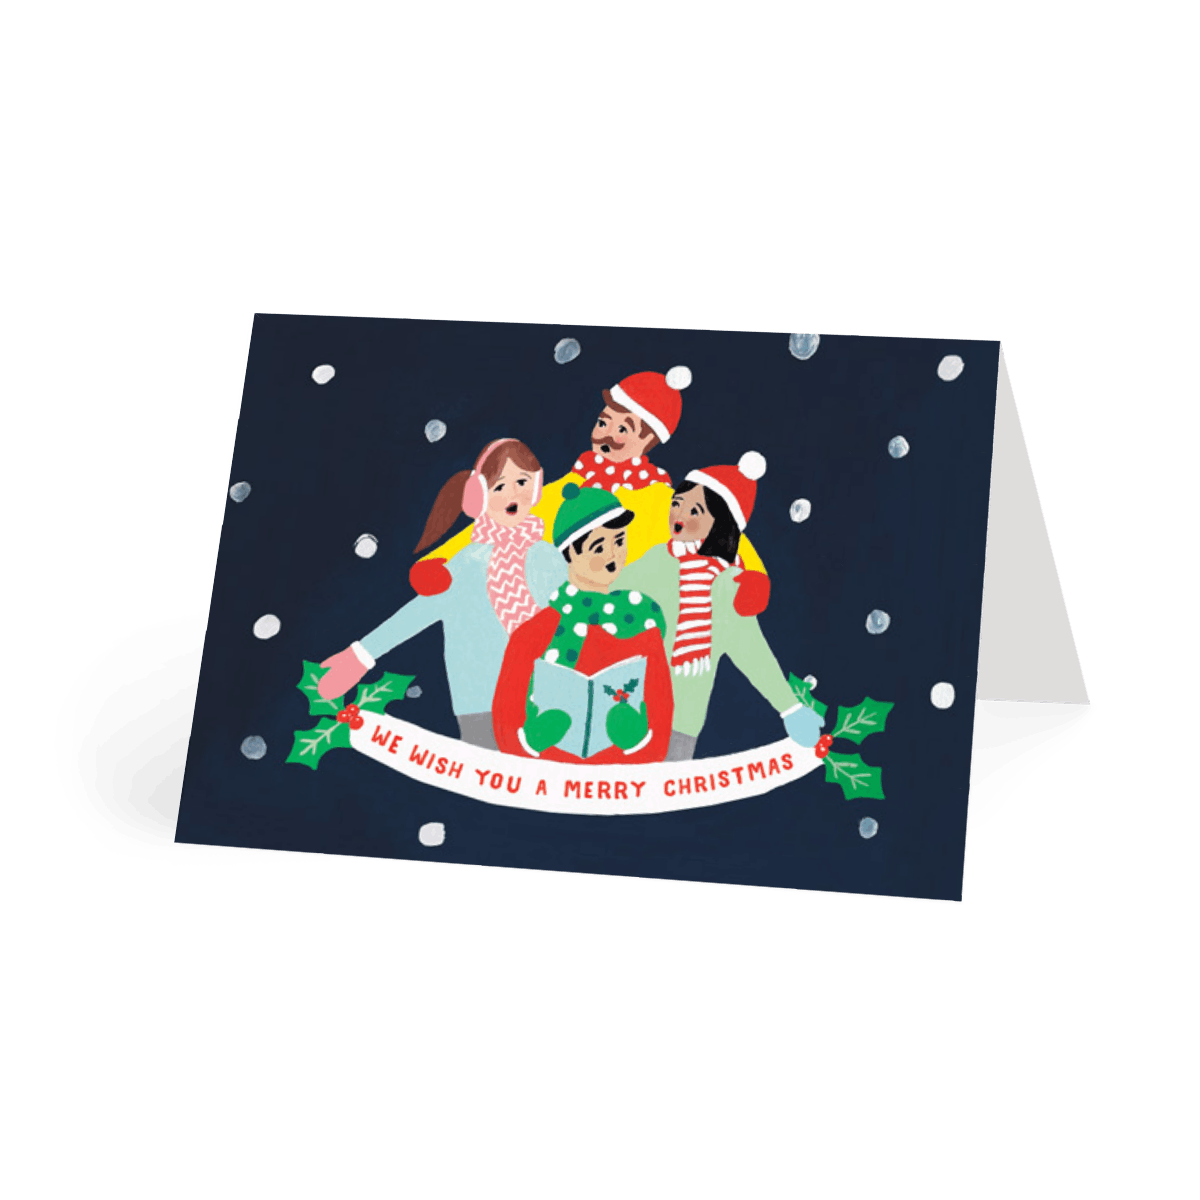 Https%3a%2f%2fwww.papier.com%2fproduct image%2f10028%2f14%2fchristmas carolers 2550 front 1568147297.png?ixlib=rb 1.1